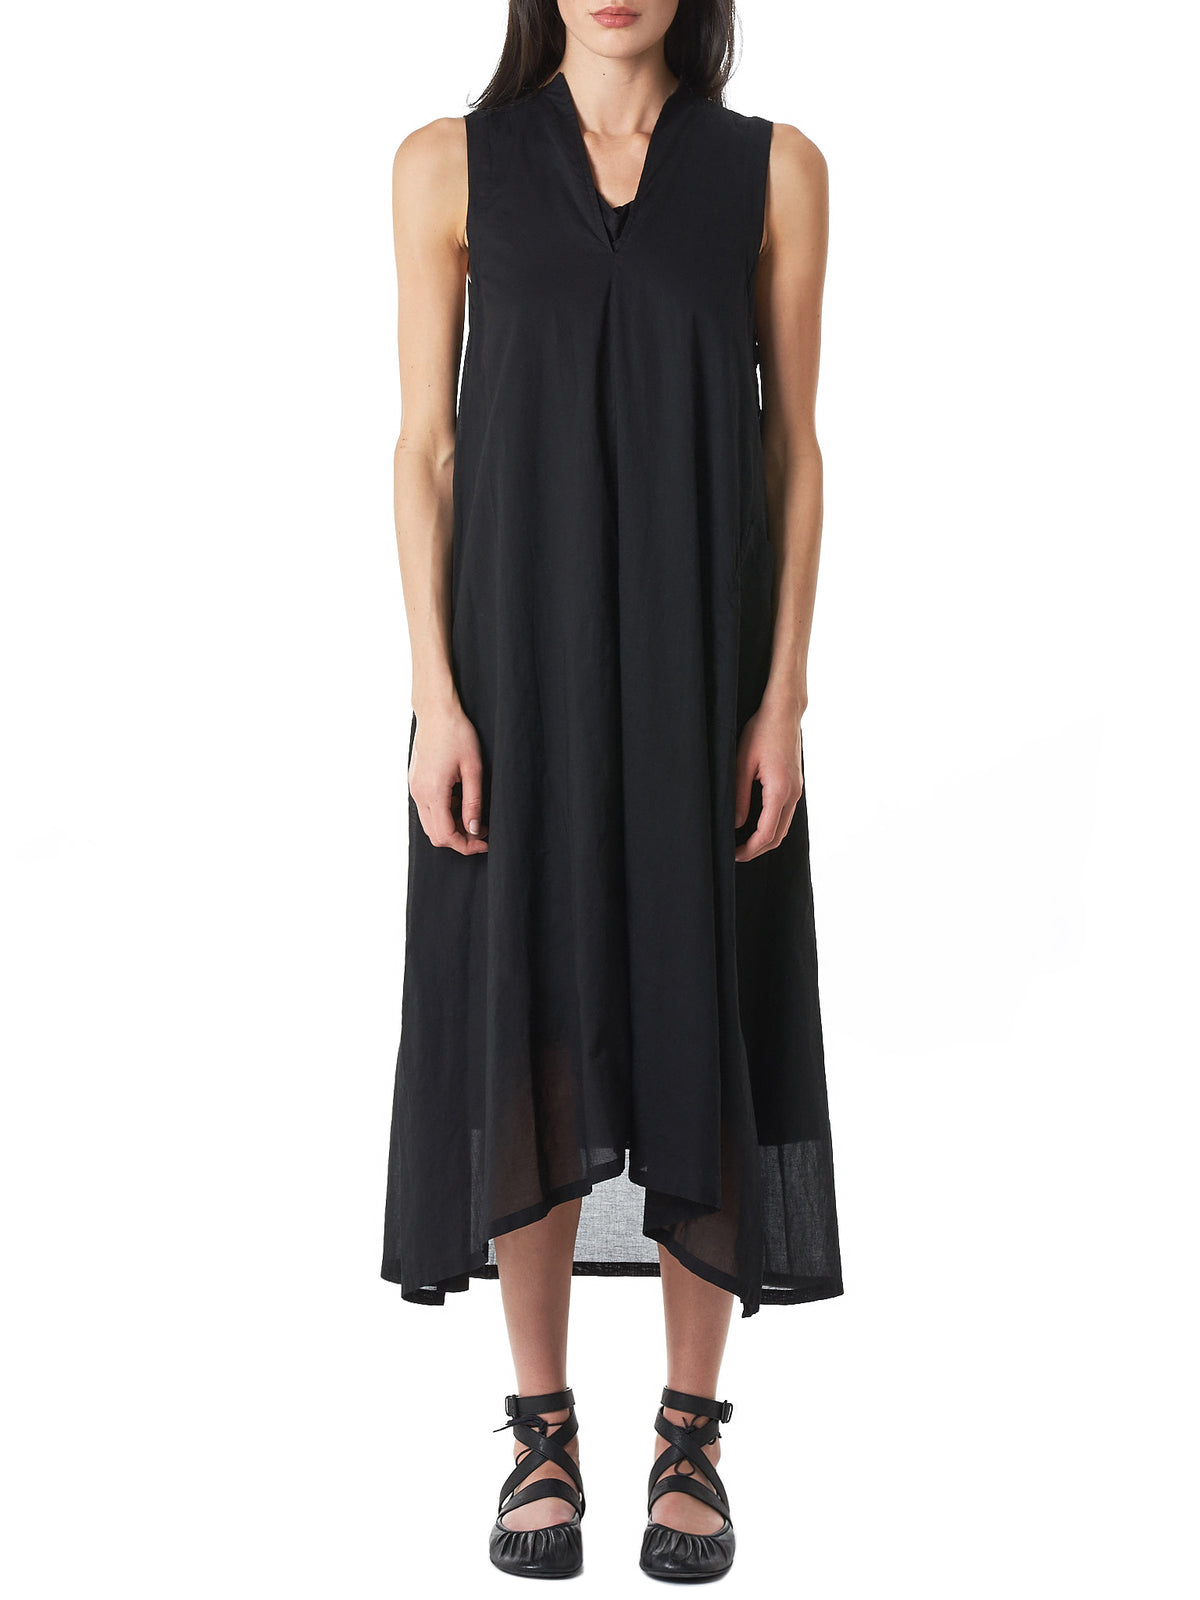 Sleeveless Layered Dress (YZ-D07-028-BLACK)